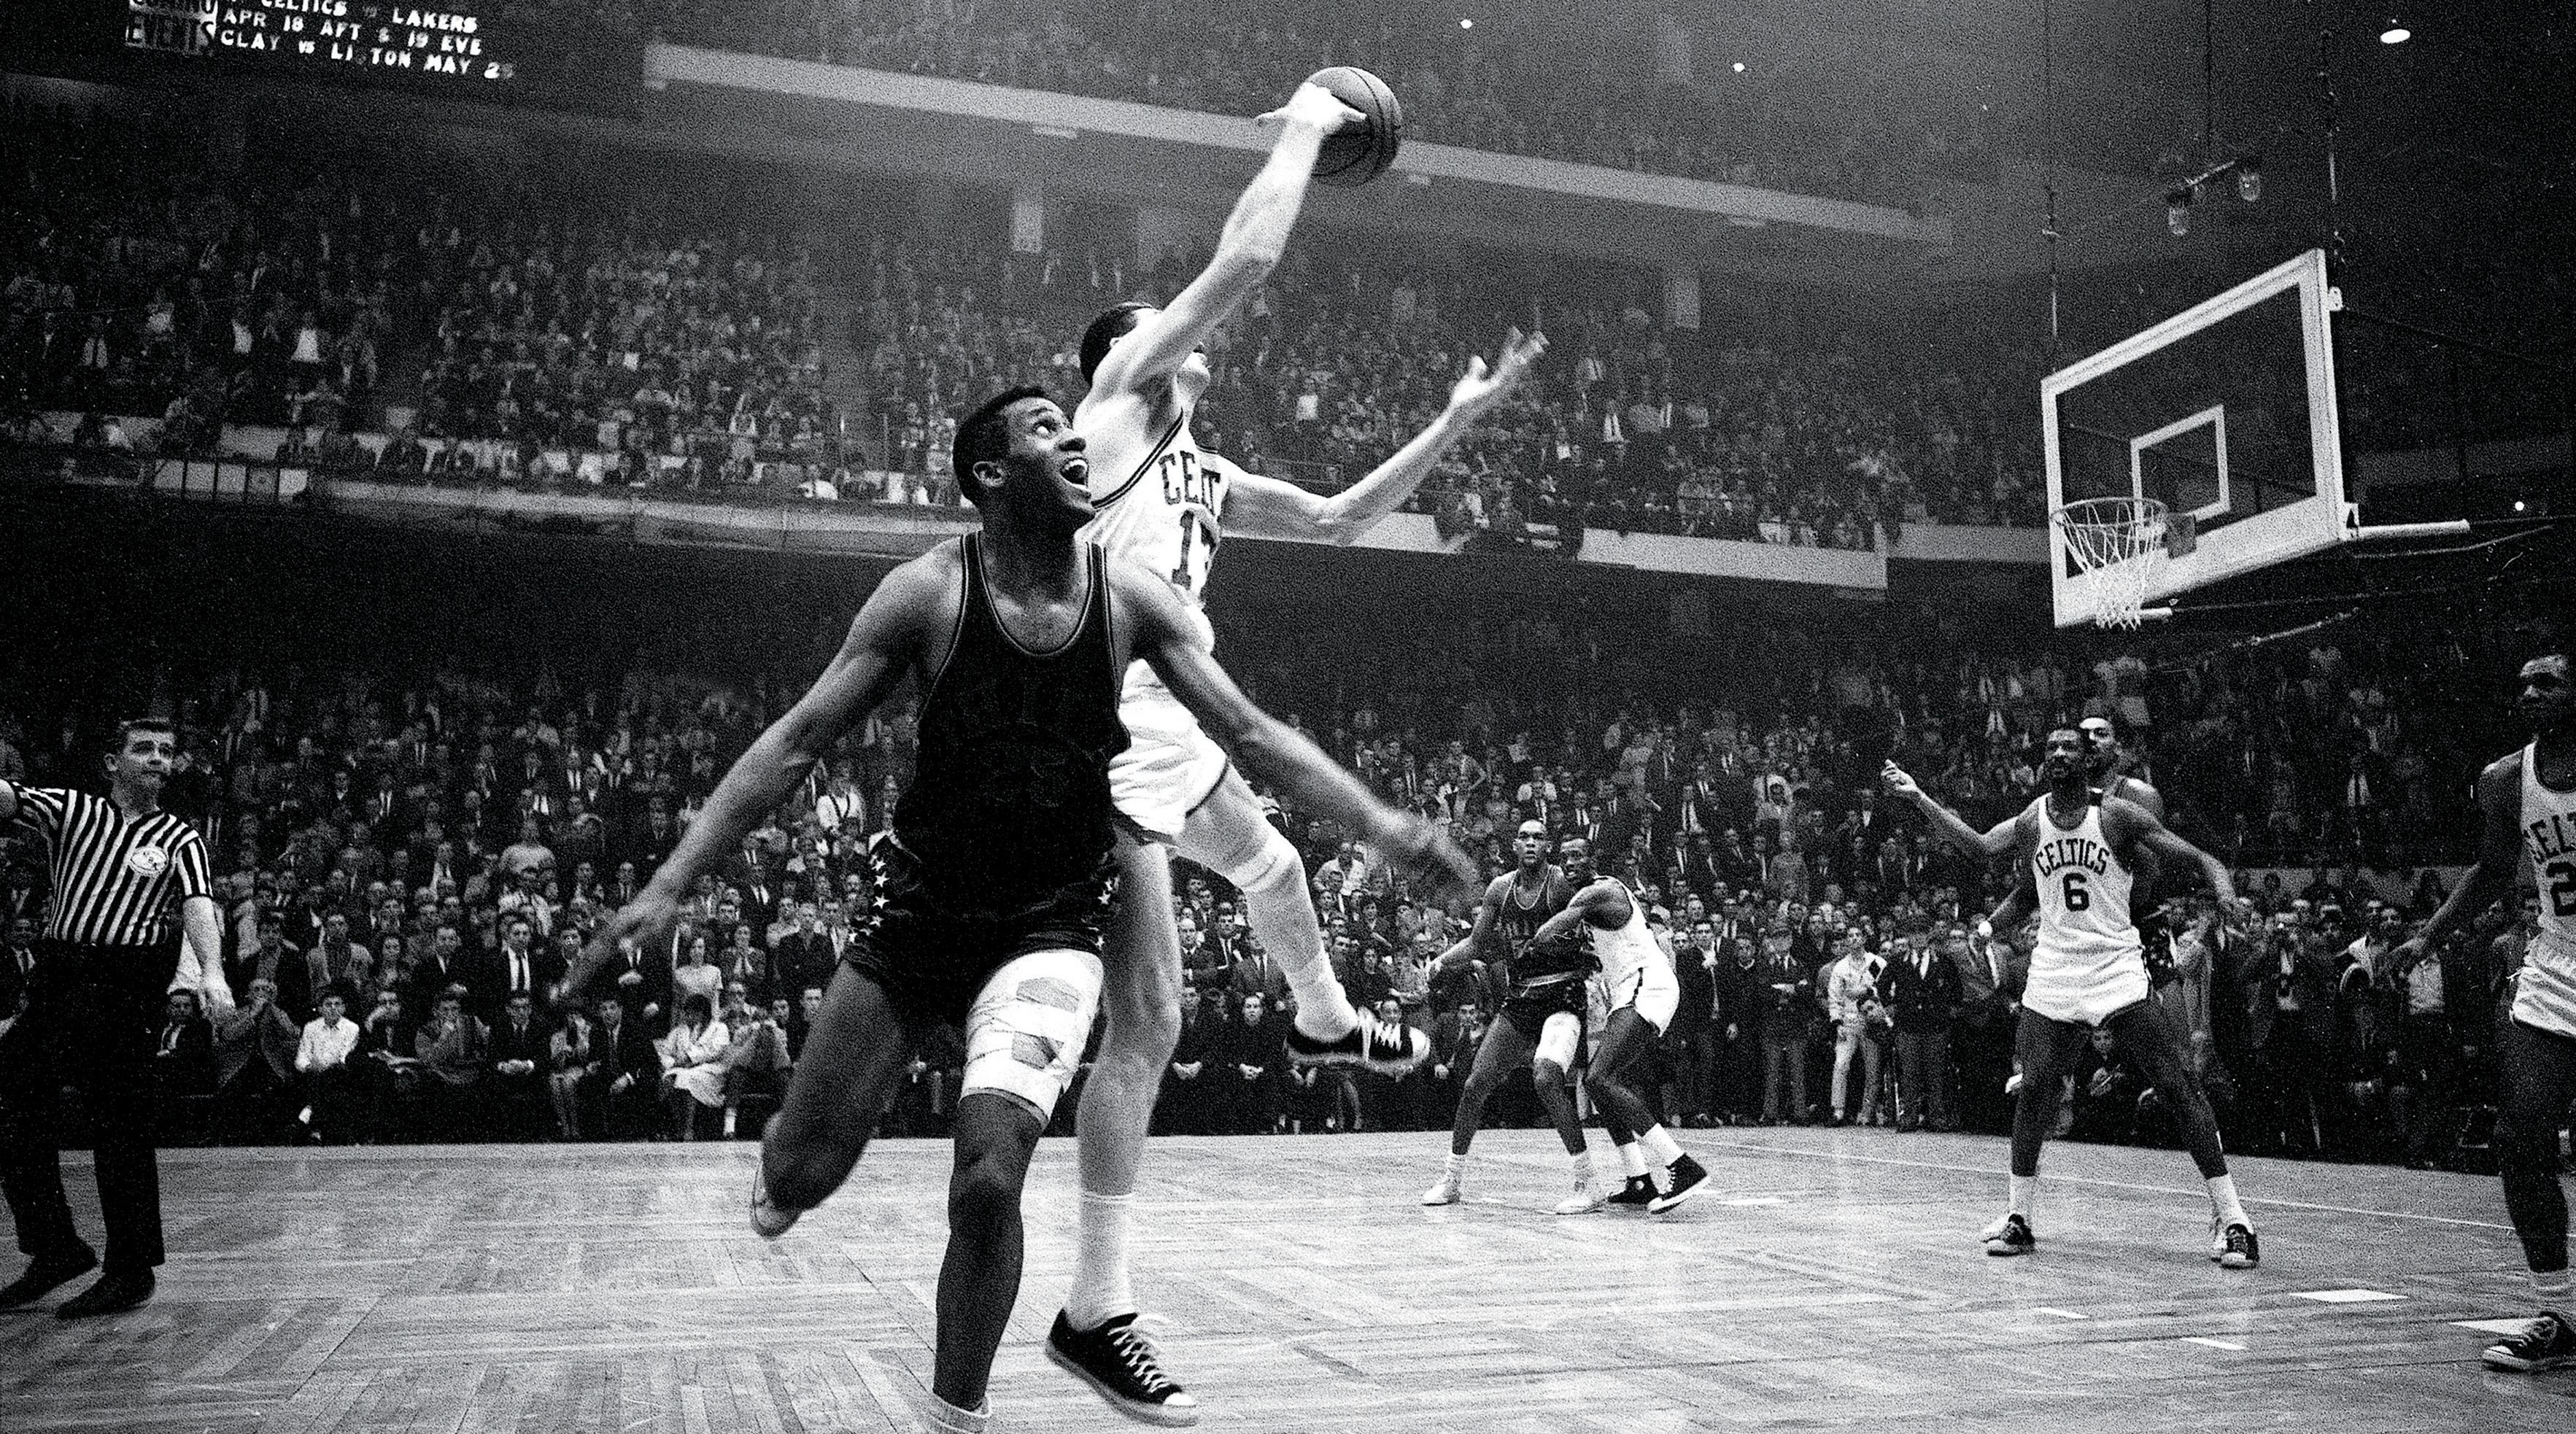 Though he was often the first man off the bench, John Havlicek produced many indelible Celtics moments—none more memorable than his game-clinching steal in Game 7 of the 1965 Eastern Division finals. Sports Illustrated remembers the Boston legend and the history he created.